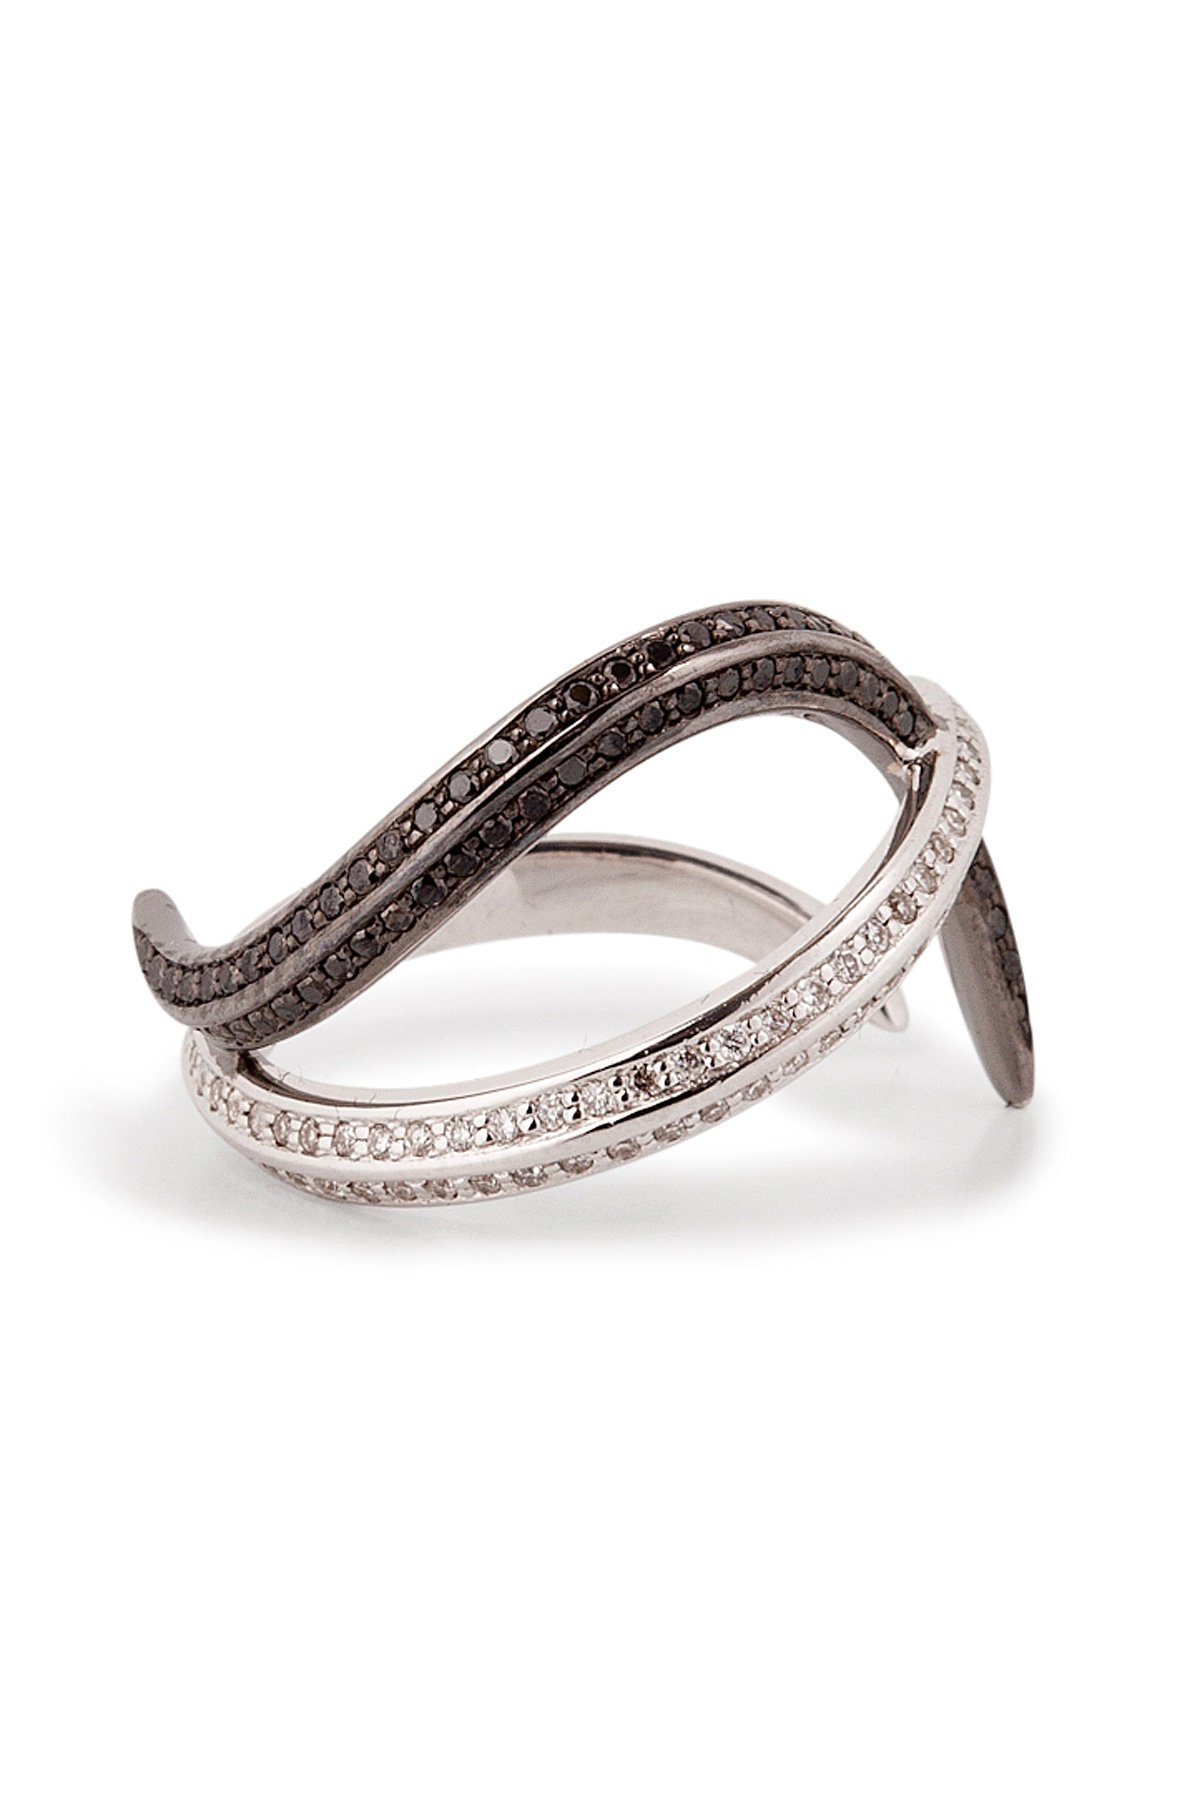 18kt Gold Thumb Ring with Black and White Diamonds Gr. One Size